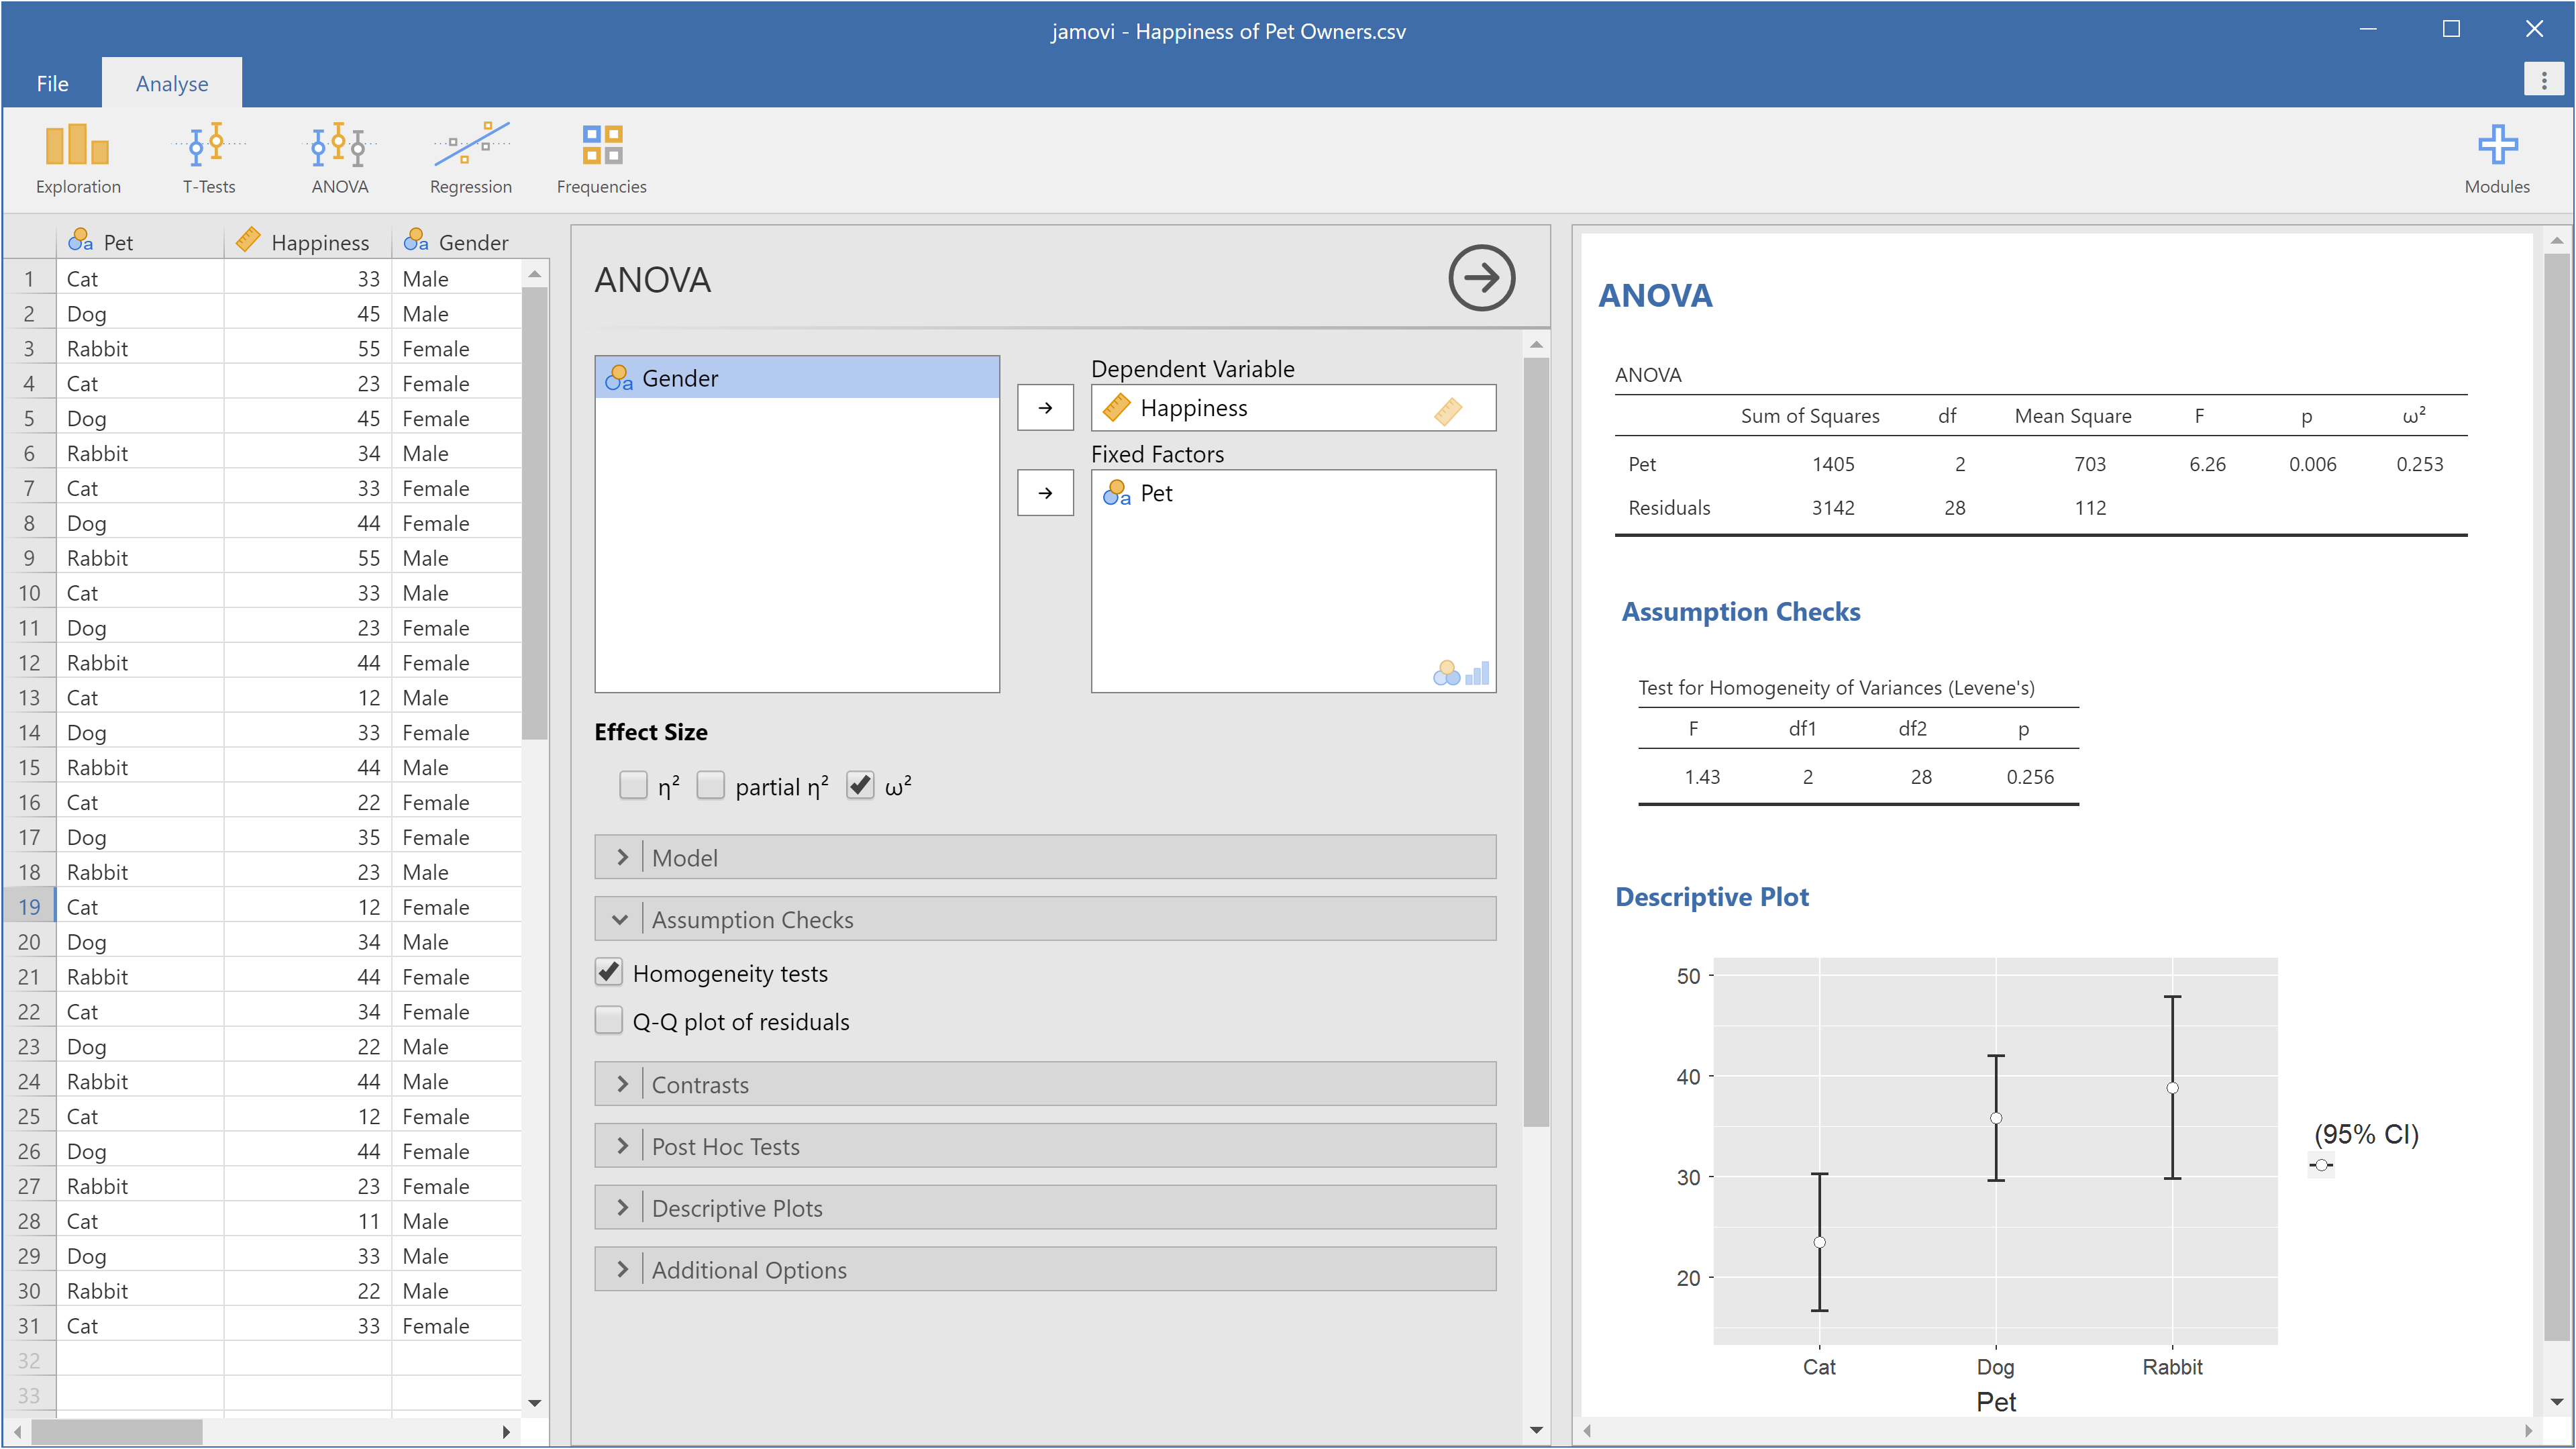 INTRODUCING JAMOVI: FREE AND OPEN STATISTICAL SOFTWARE